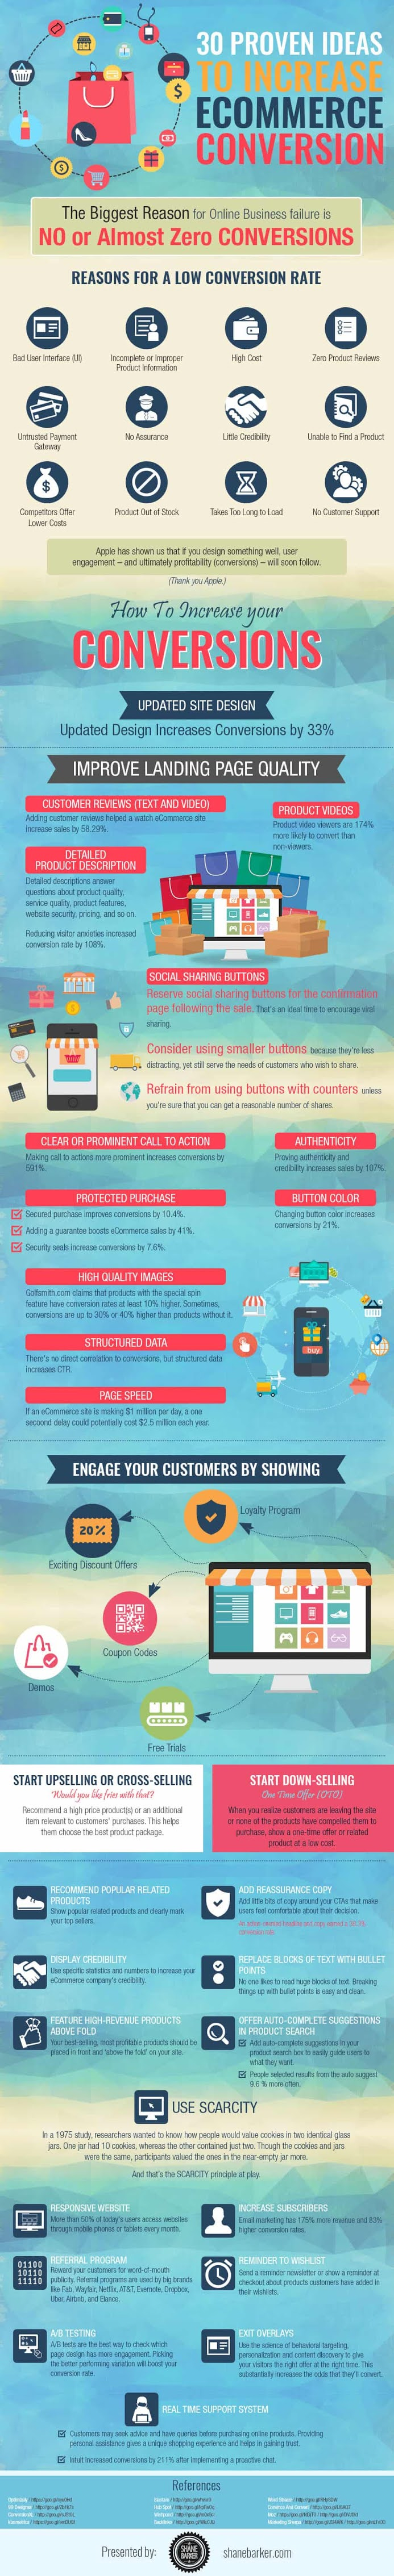 30 Proven Ideas to Increase Ecommerce Conversions #infographic